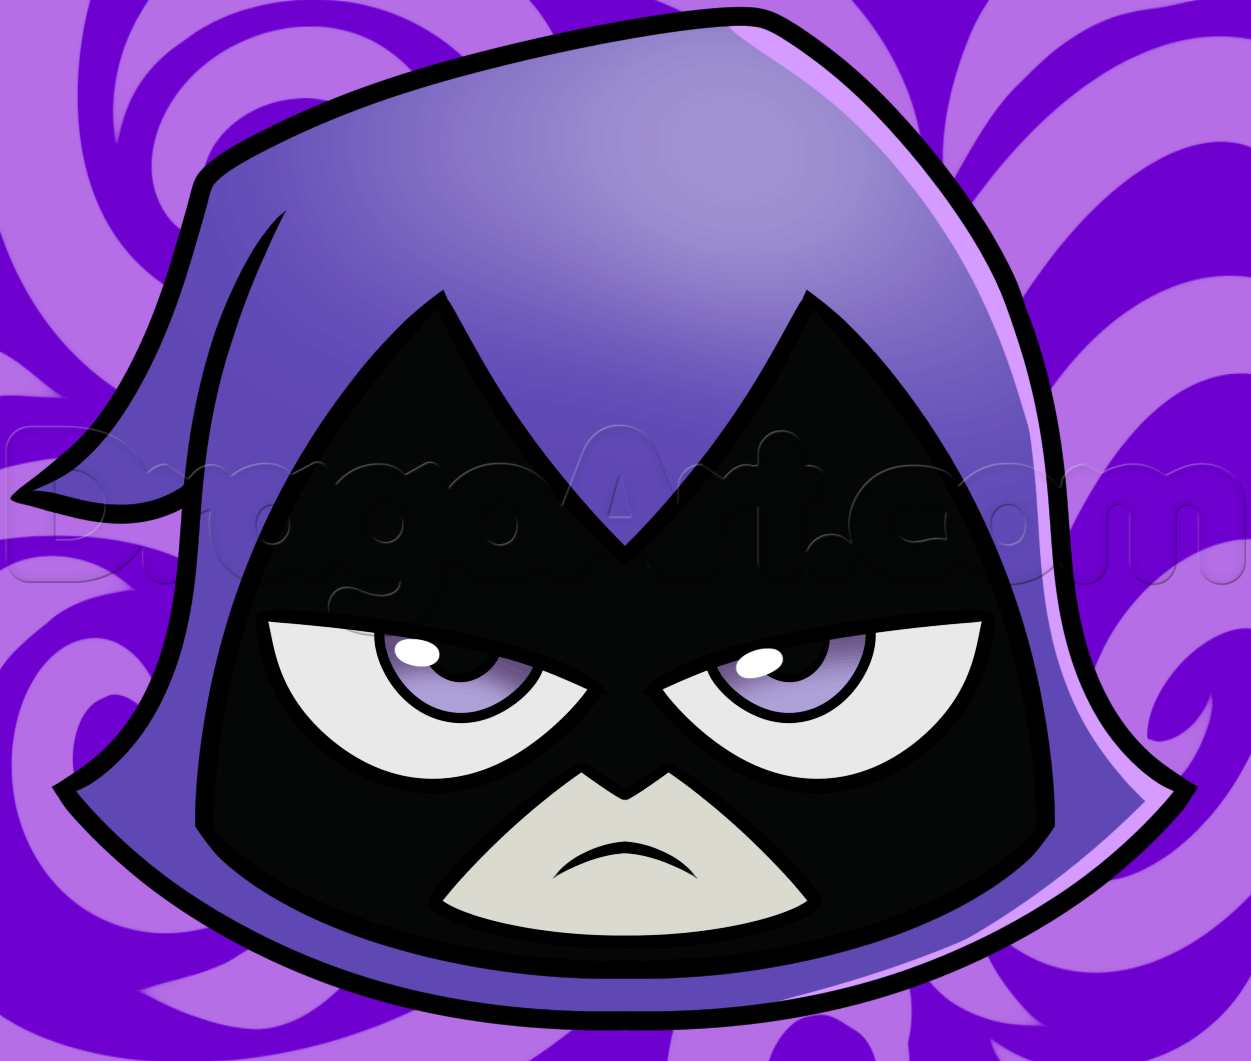 Drawn raven easy  How Draw Raven to